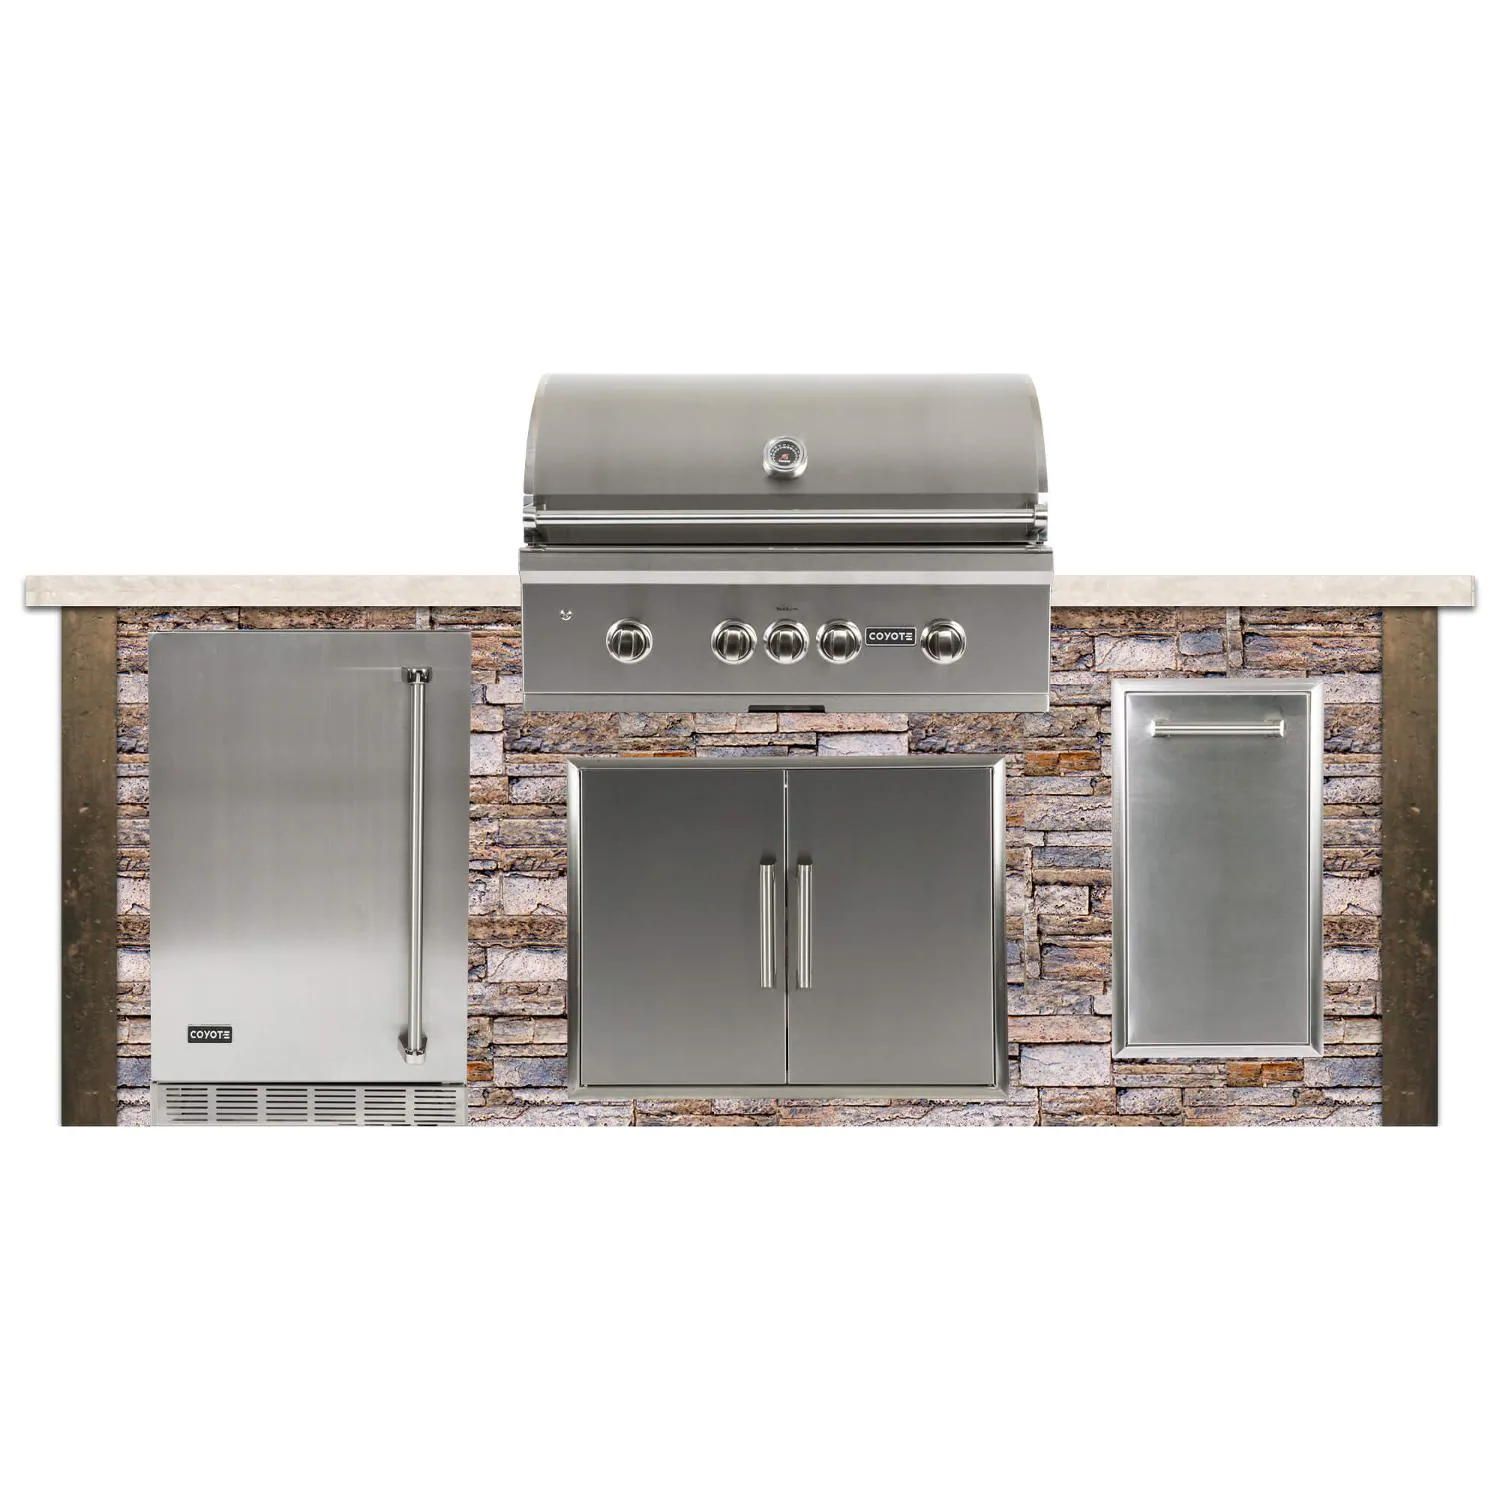 Coyote Ready-To-Assemble 8 Ft Outdoor Kitchen Island With 36-Inch S-Series Natural Gas Grill (Ships As Propane With Conversion Fittings) - Stacked Stone/Brown Terra - RTAC-G8-SB-C2SL36NG